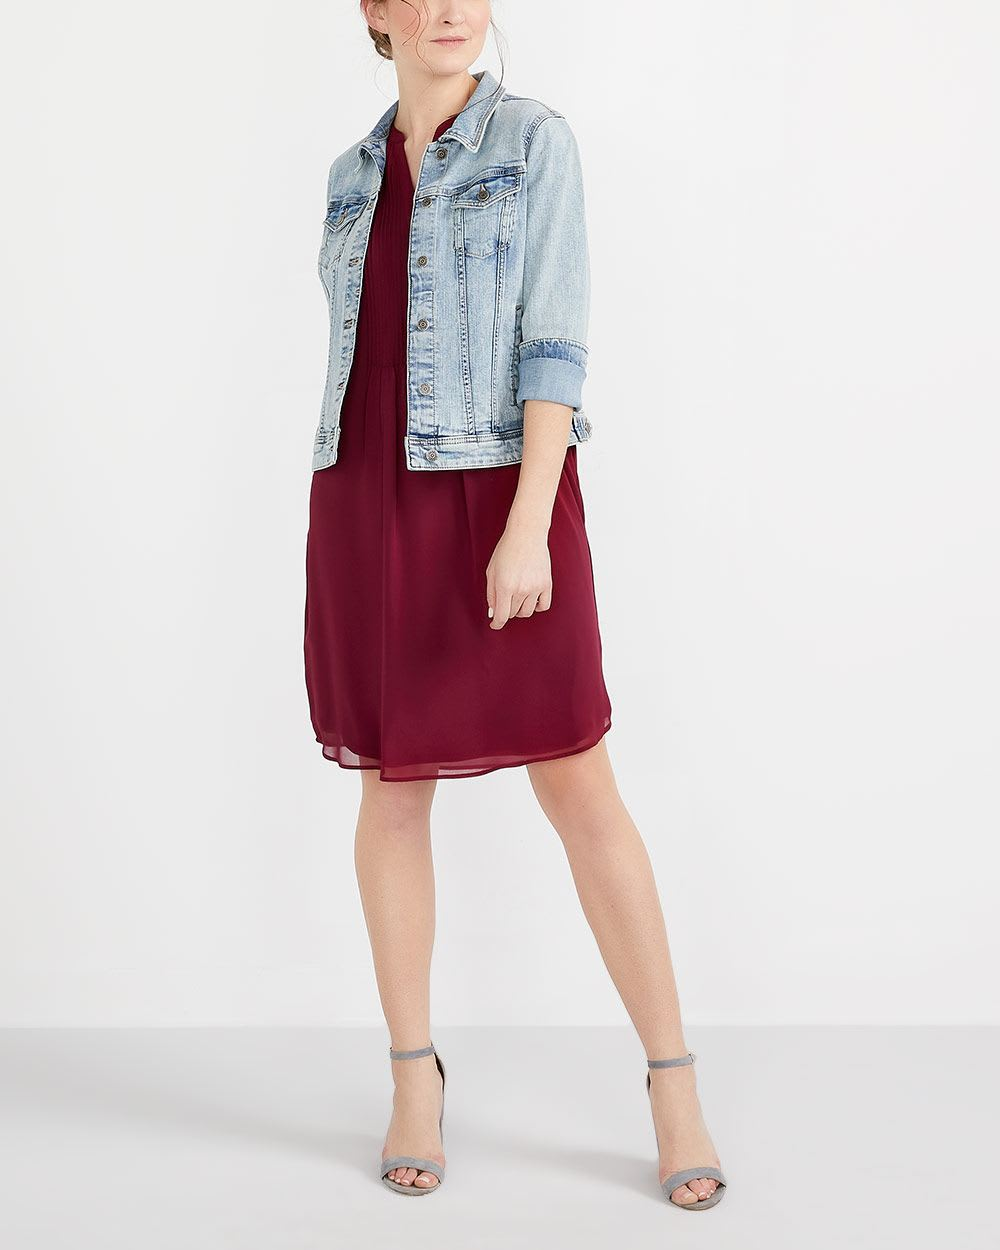 Cap Sleeve Solid Shirt Dress